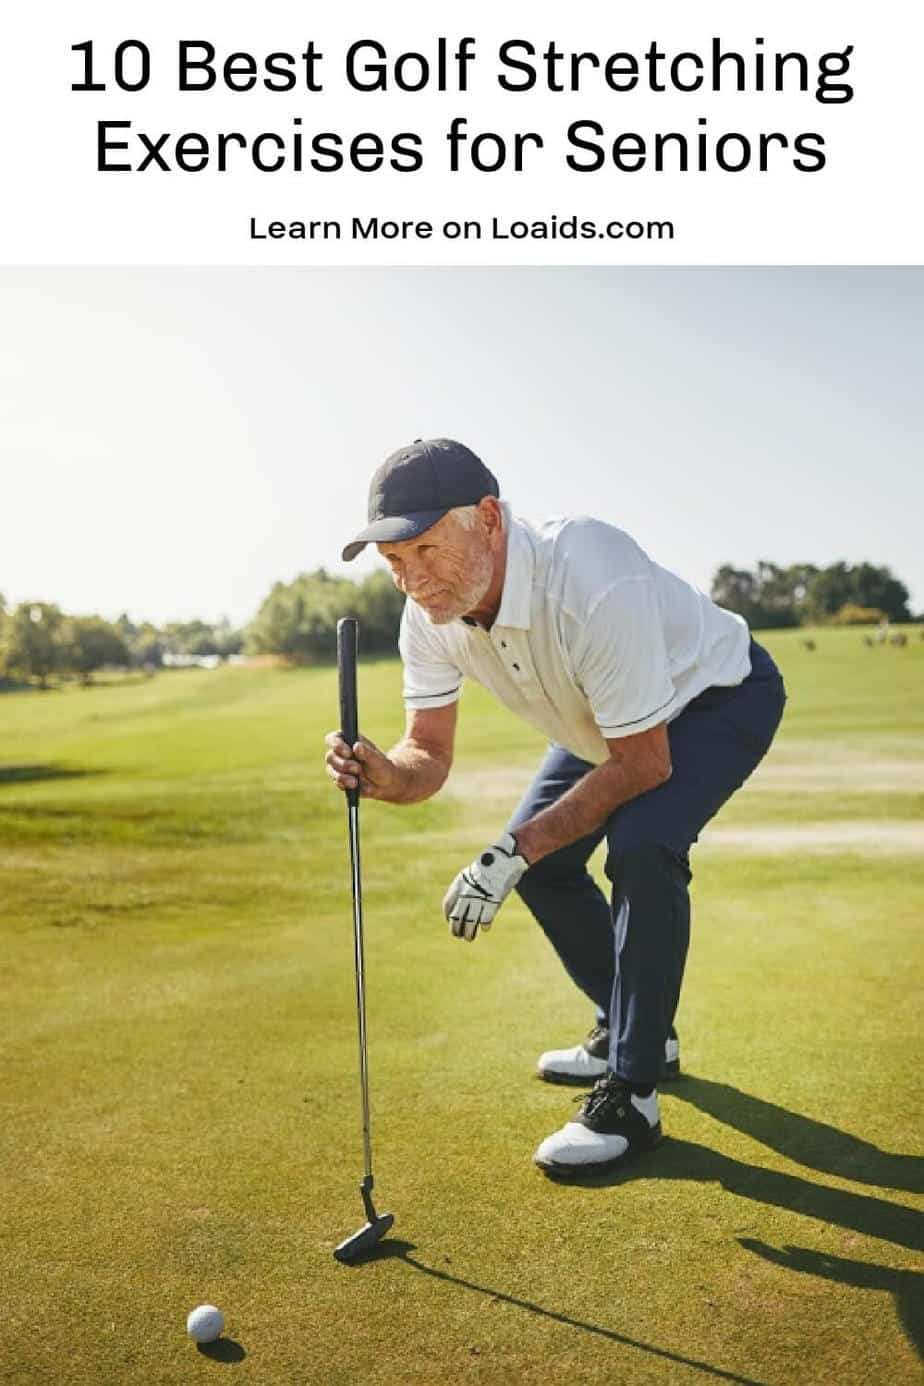 Looking for the best golf stretching exercises for seniors to warm up before you hit the links? Check out these 10 great stretches to try!